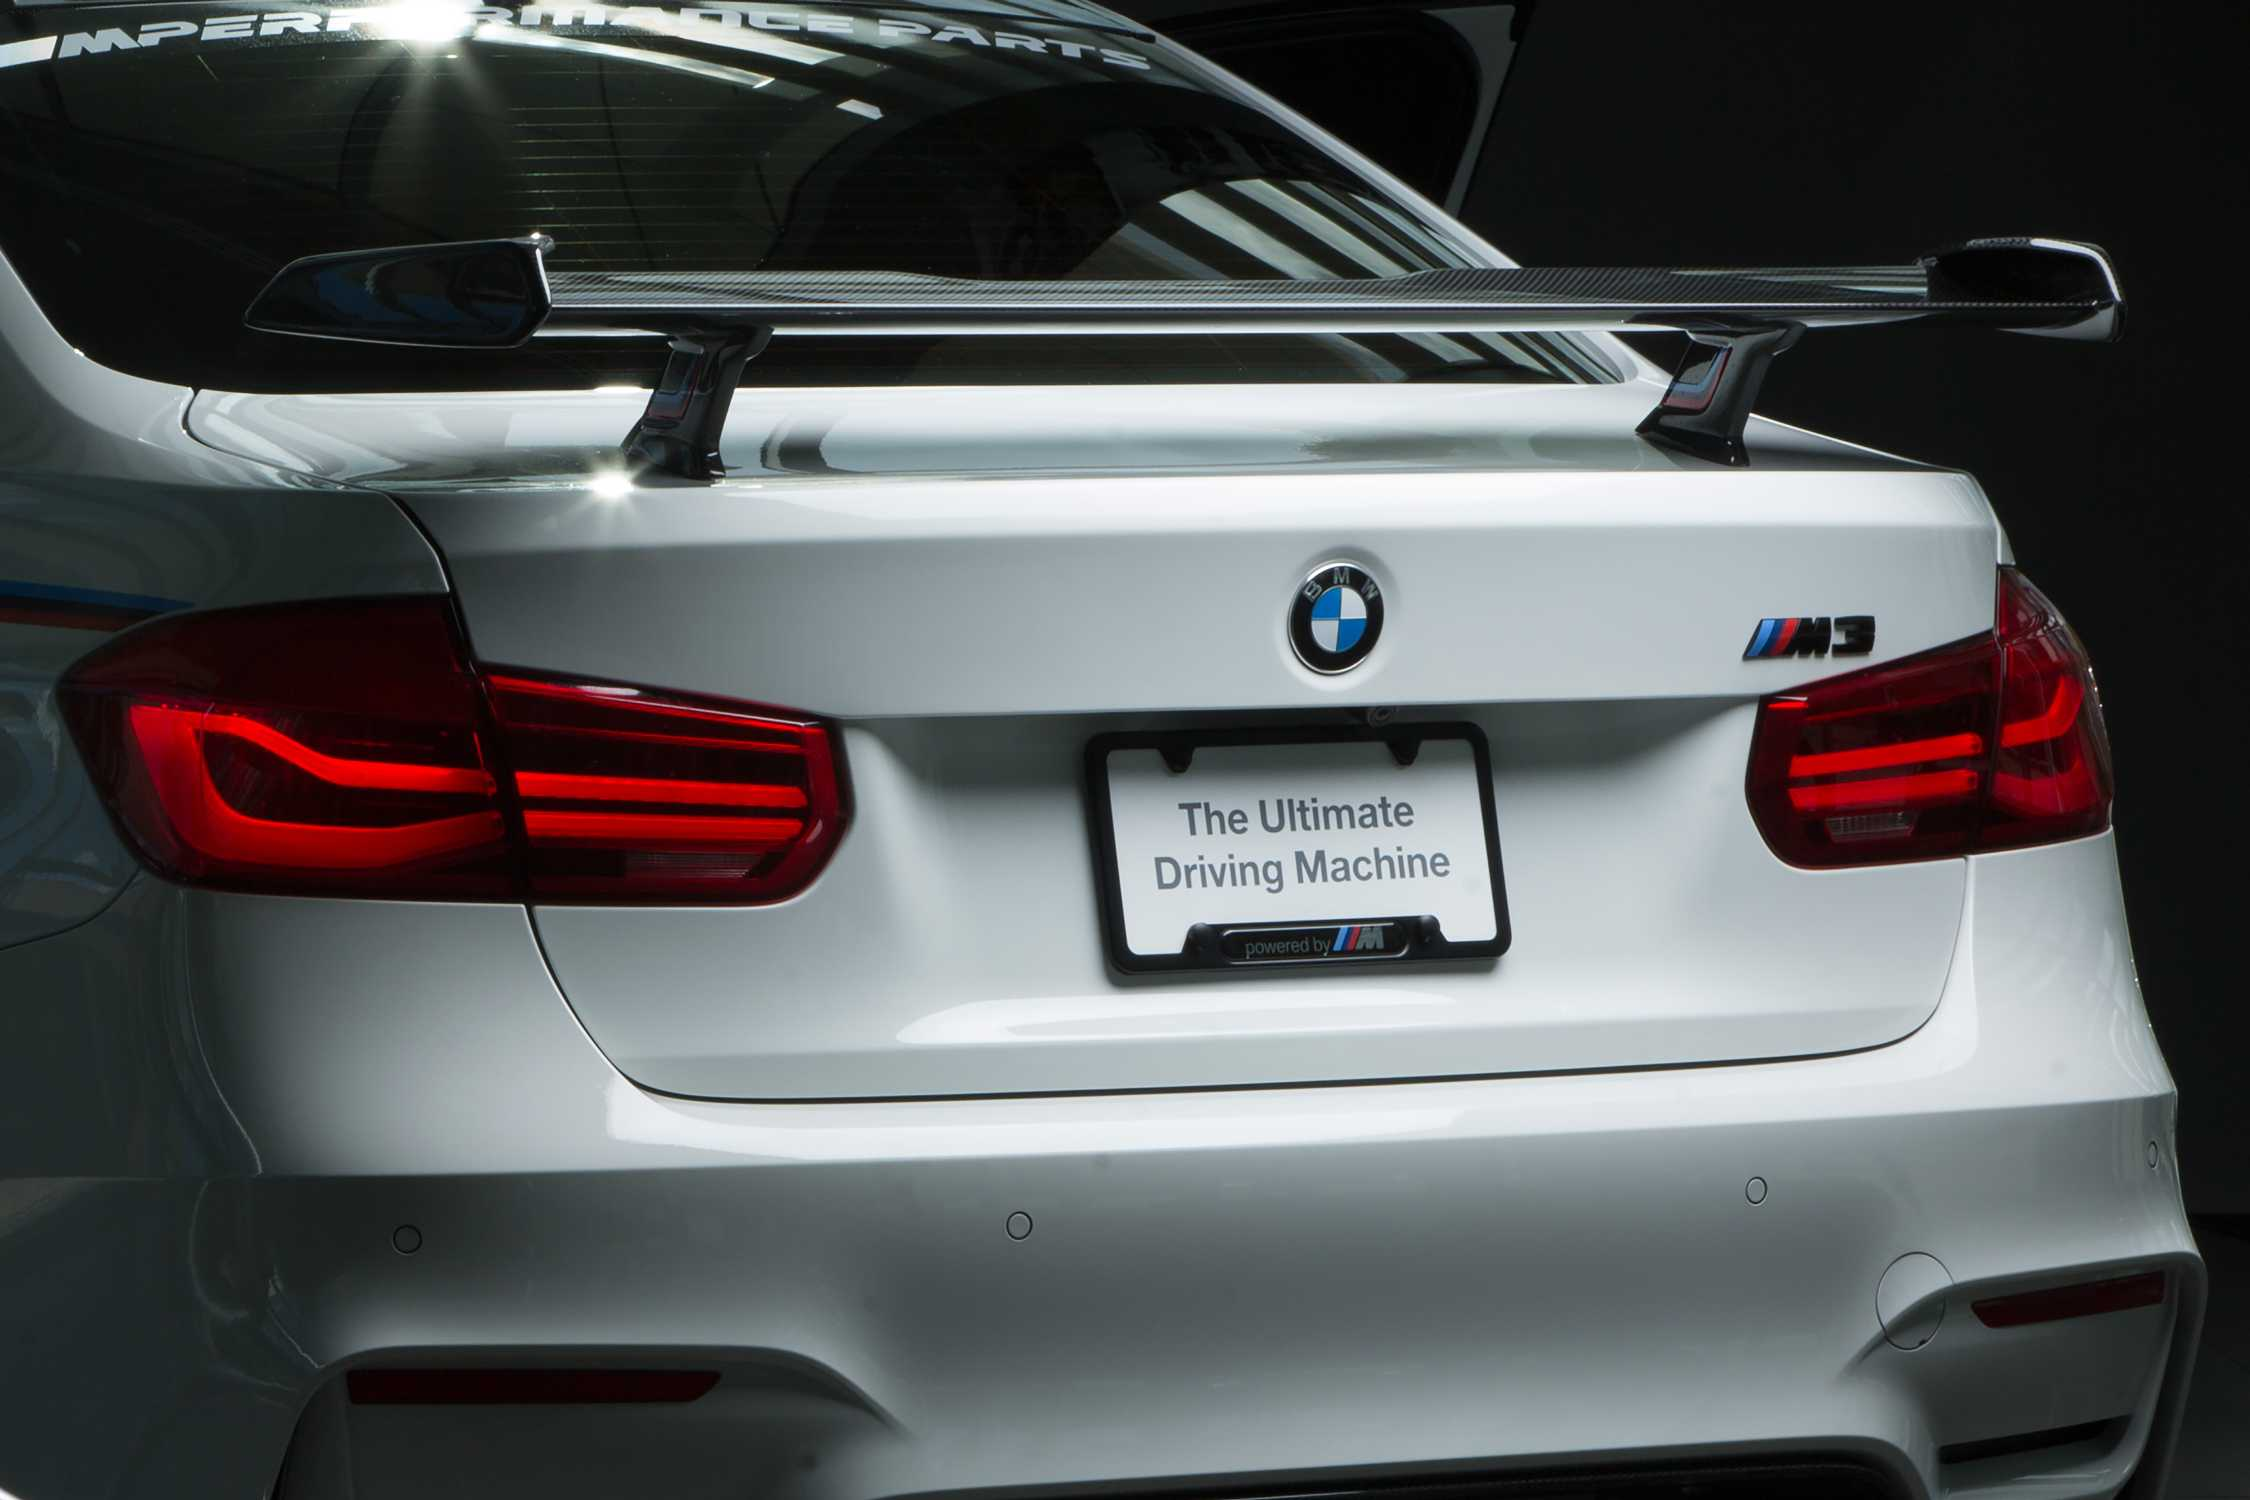 Bmw M Performance Parts And Original Bmw Accessories At 2016 Sema Show In Las Vegas